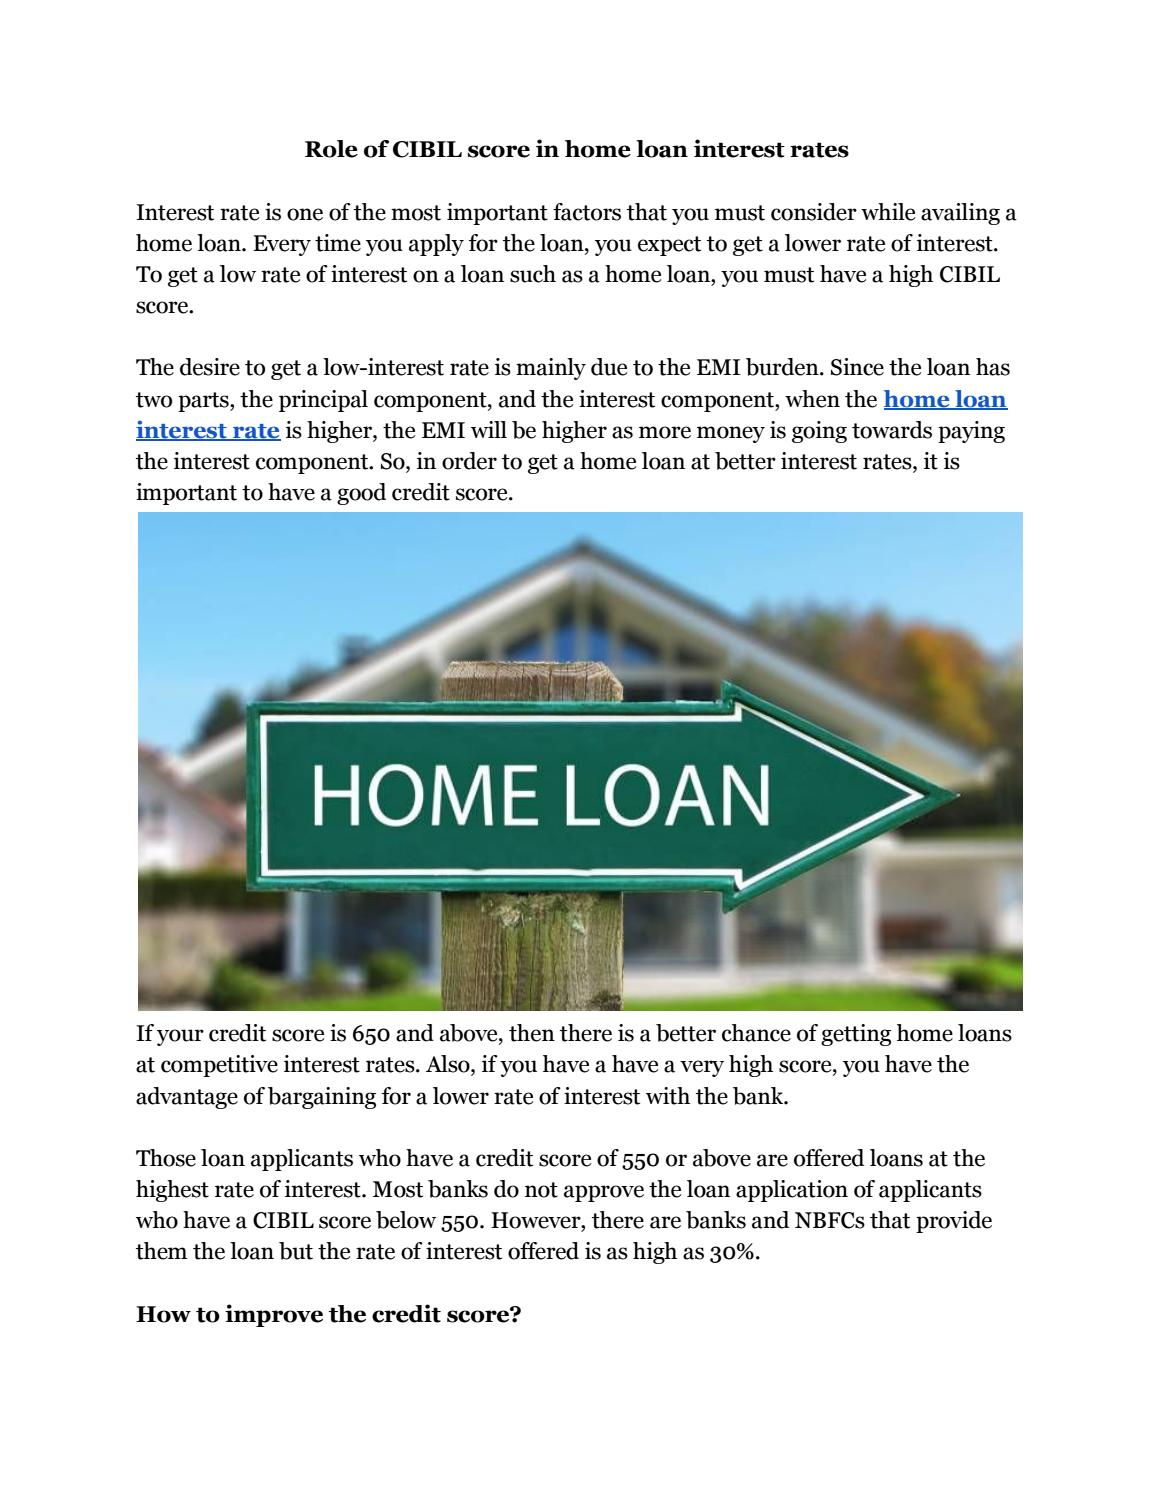 550 Credit Score Home Loan >> Role Of Cibil Score In Home Loan Interest Rates By Tushar